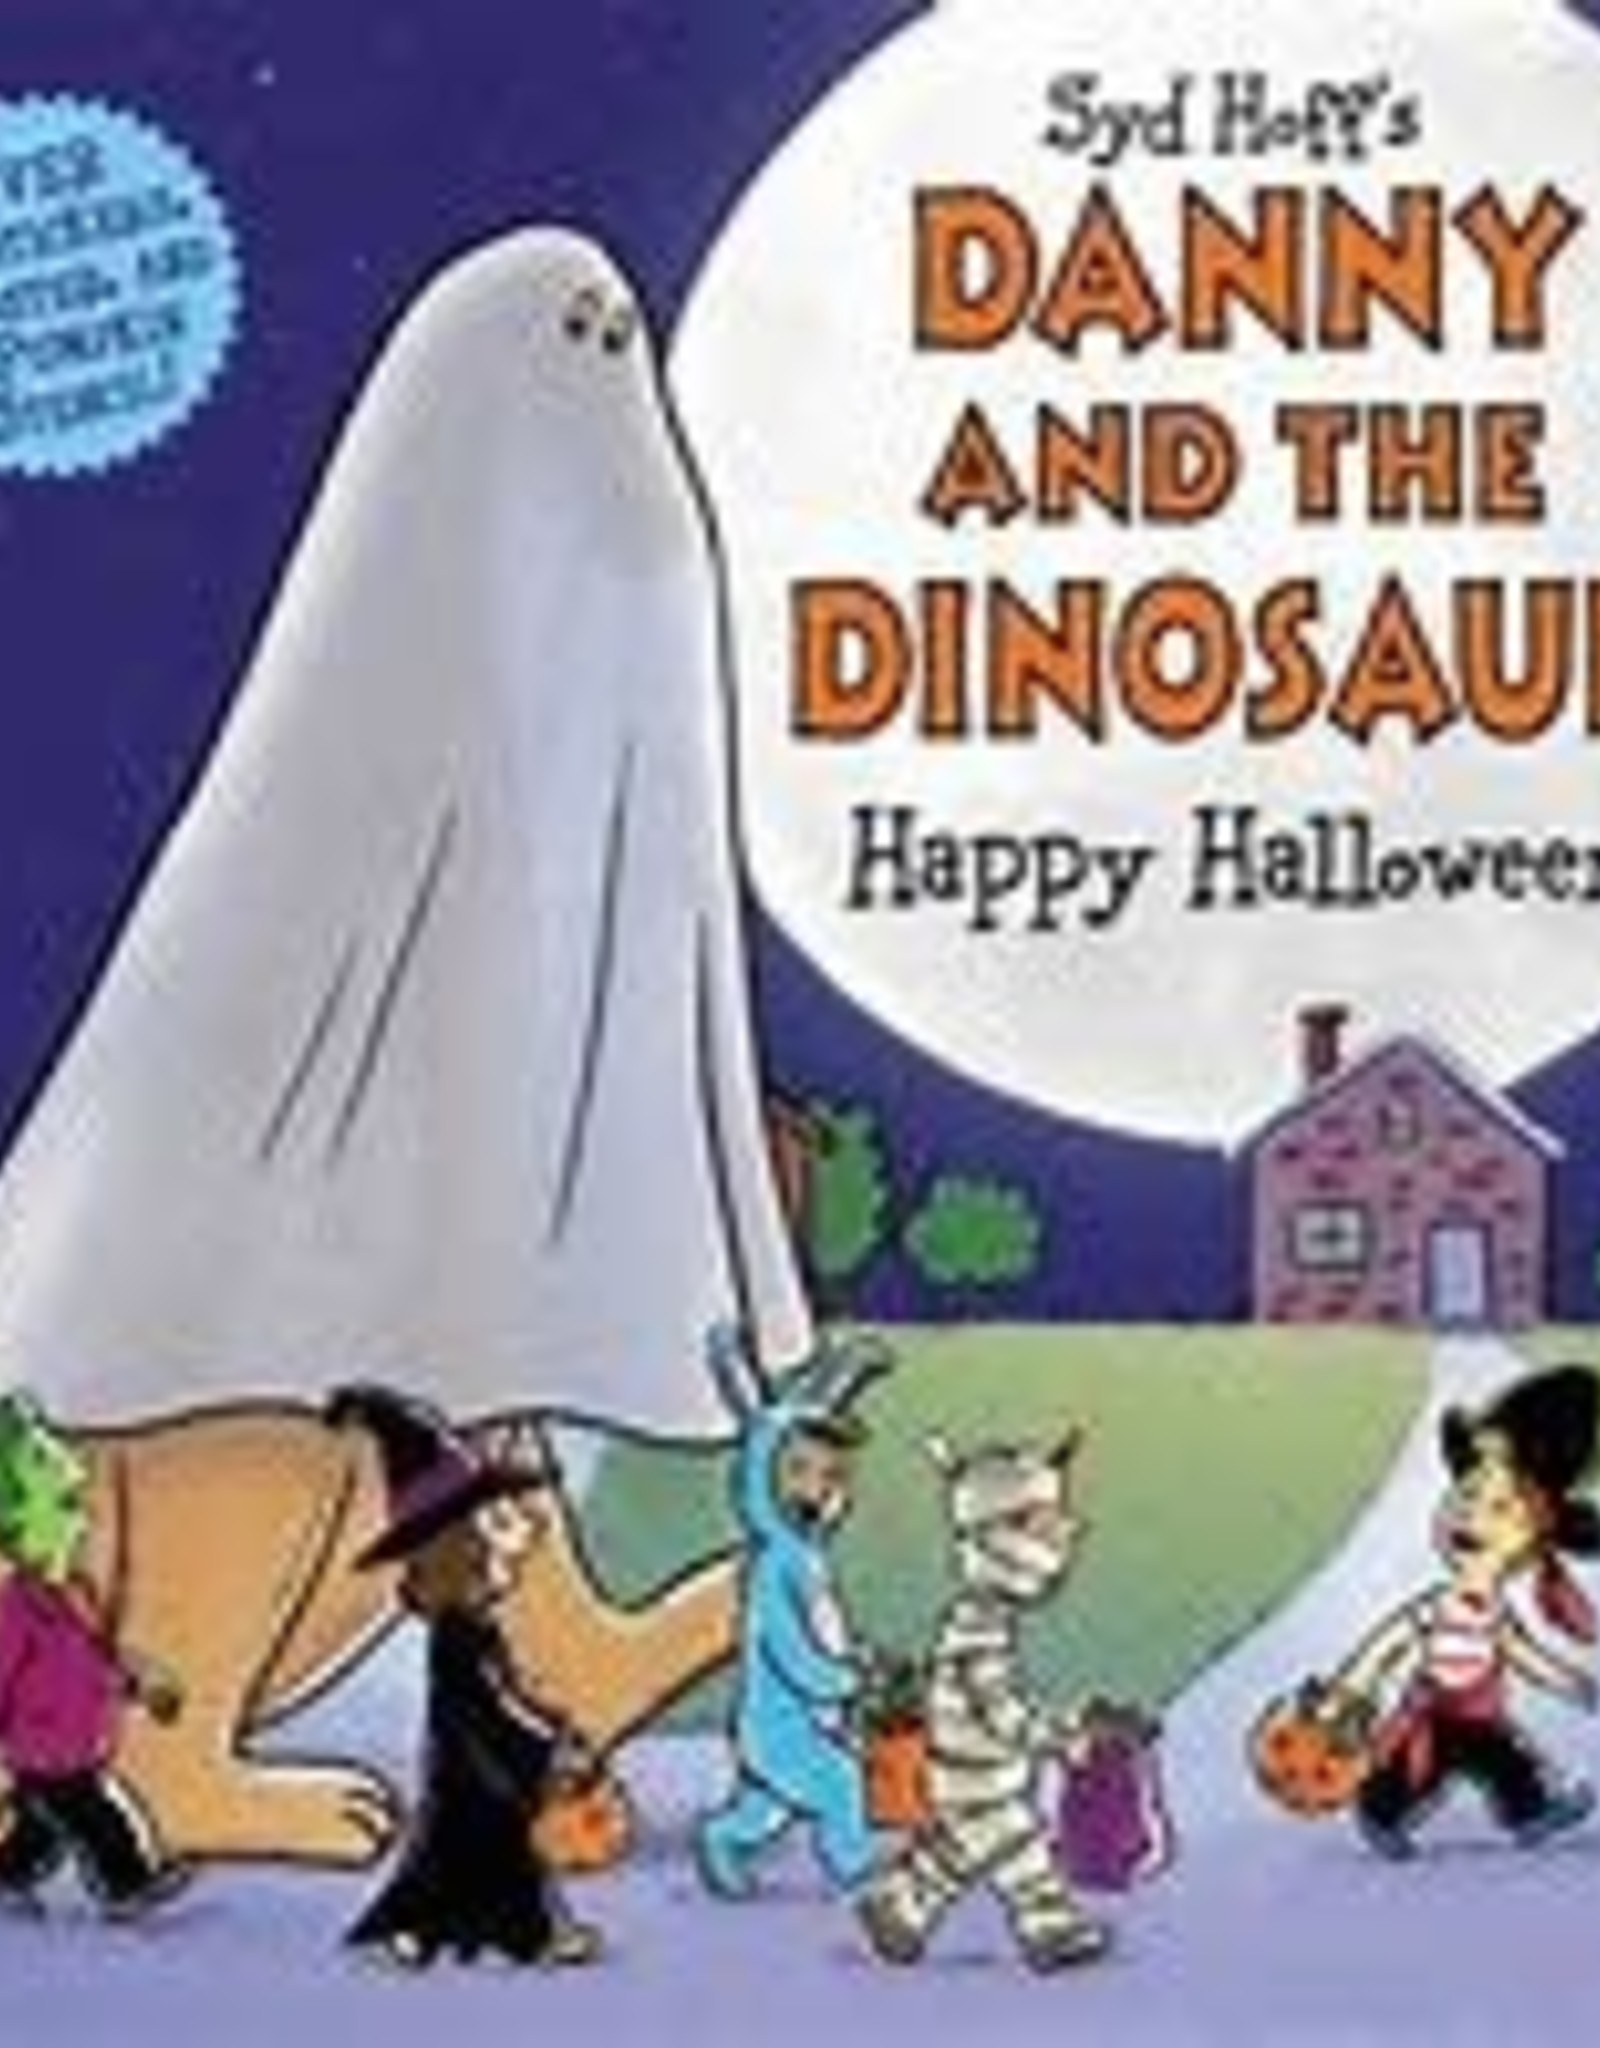 Happy Halloween Danny and the Dinosaur